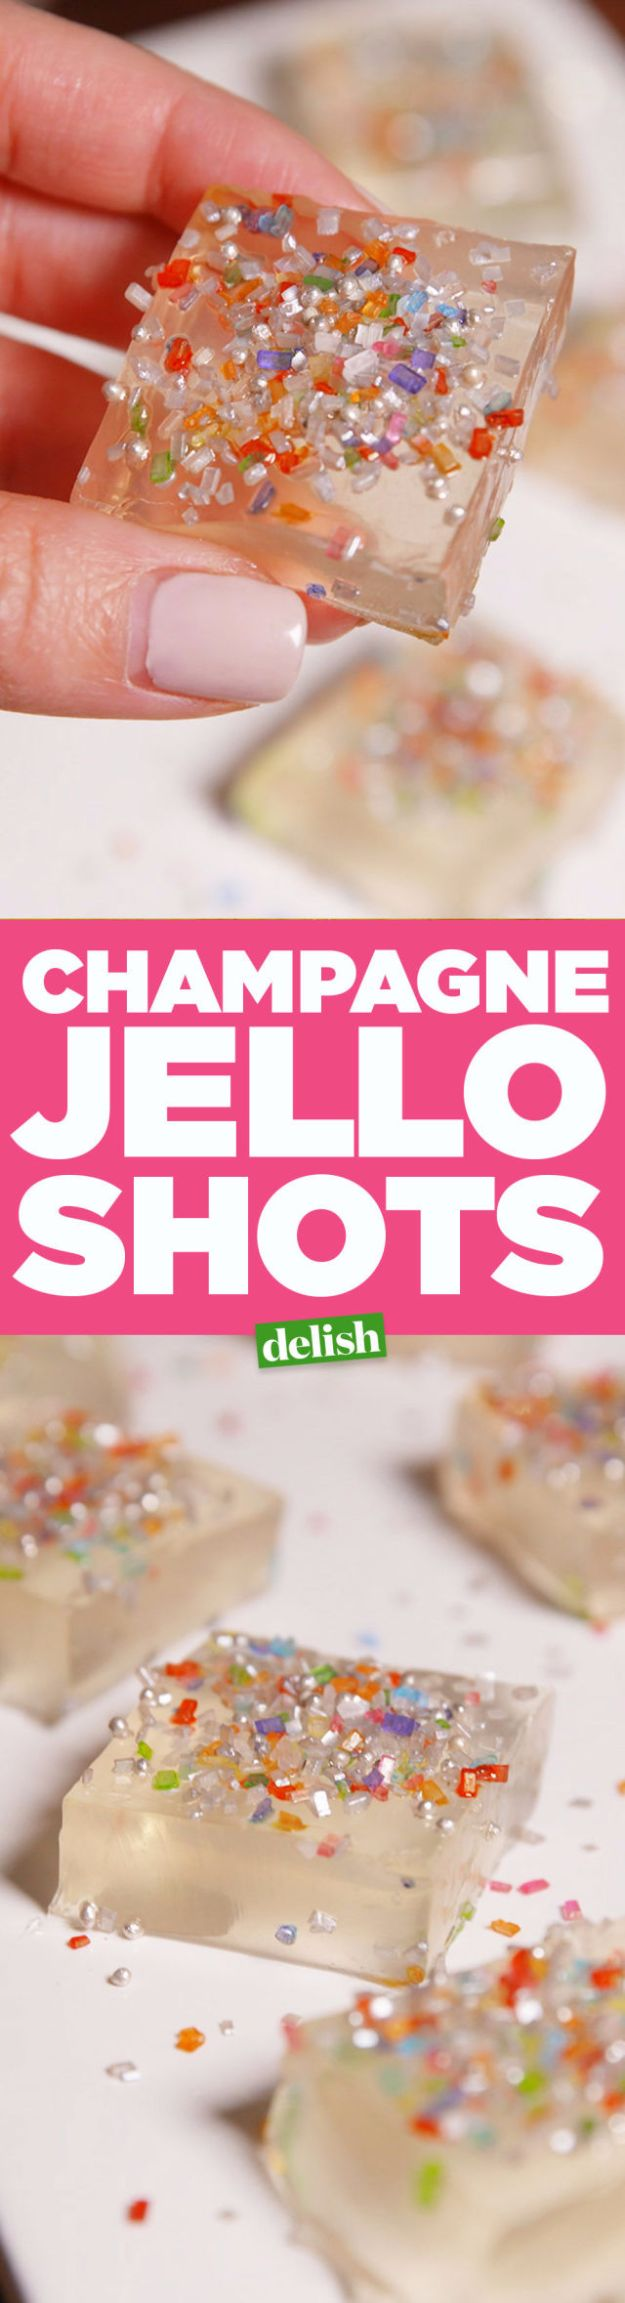 Best Jello Shot Recipes - Champagne Jello Shots - Easy Jello Shots Recipe Ideas with Vodka, Strawberry, Tequila, Rum, Jolly Rancher and Creative Alcohol - Unique and Fun Drinks for Parties like Whiskey Fireball, Fall Halloween Versions, Malibu, 4th of July, Birthday, Summer, Christmas and Birthdays #jelloshots #partydrinks #drinkrecipes